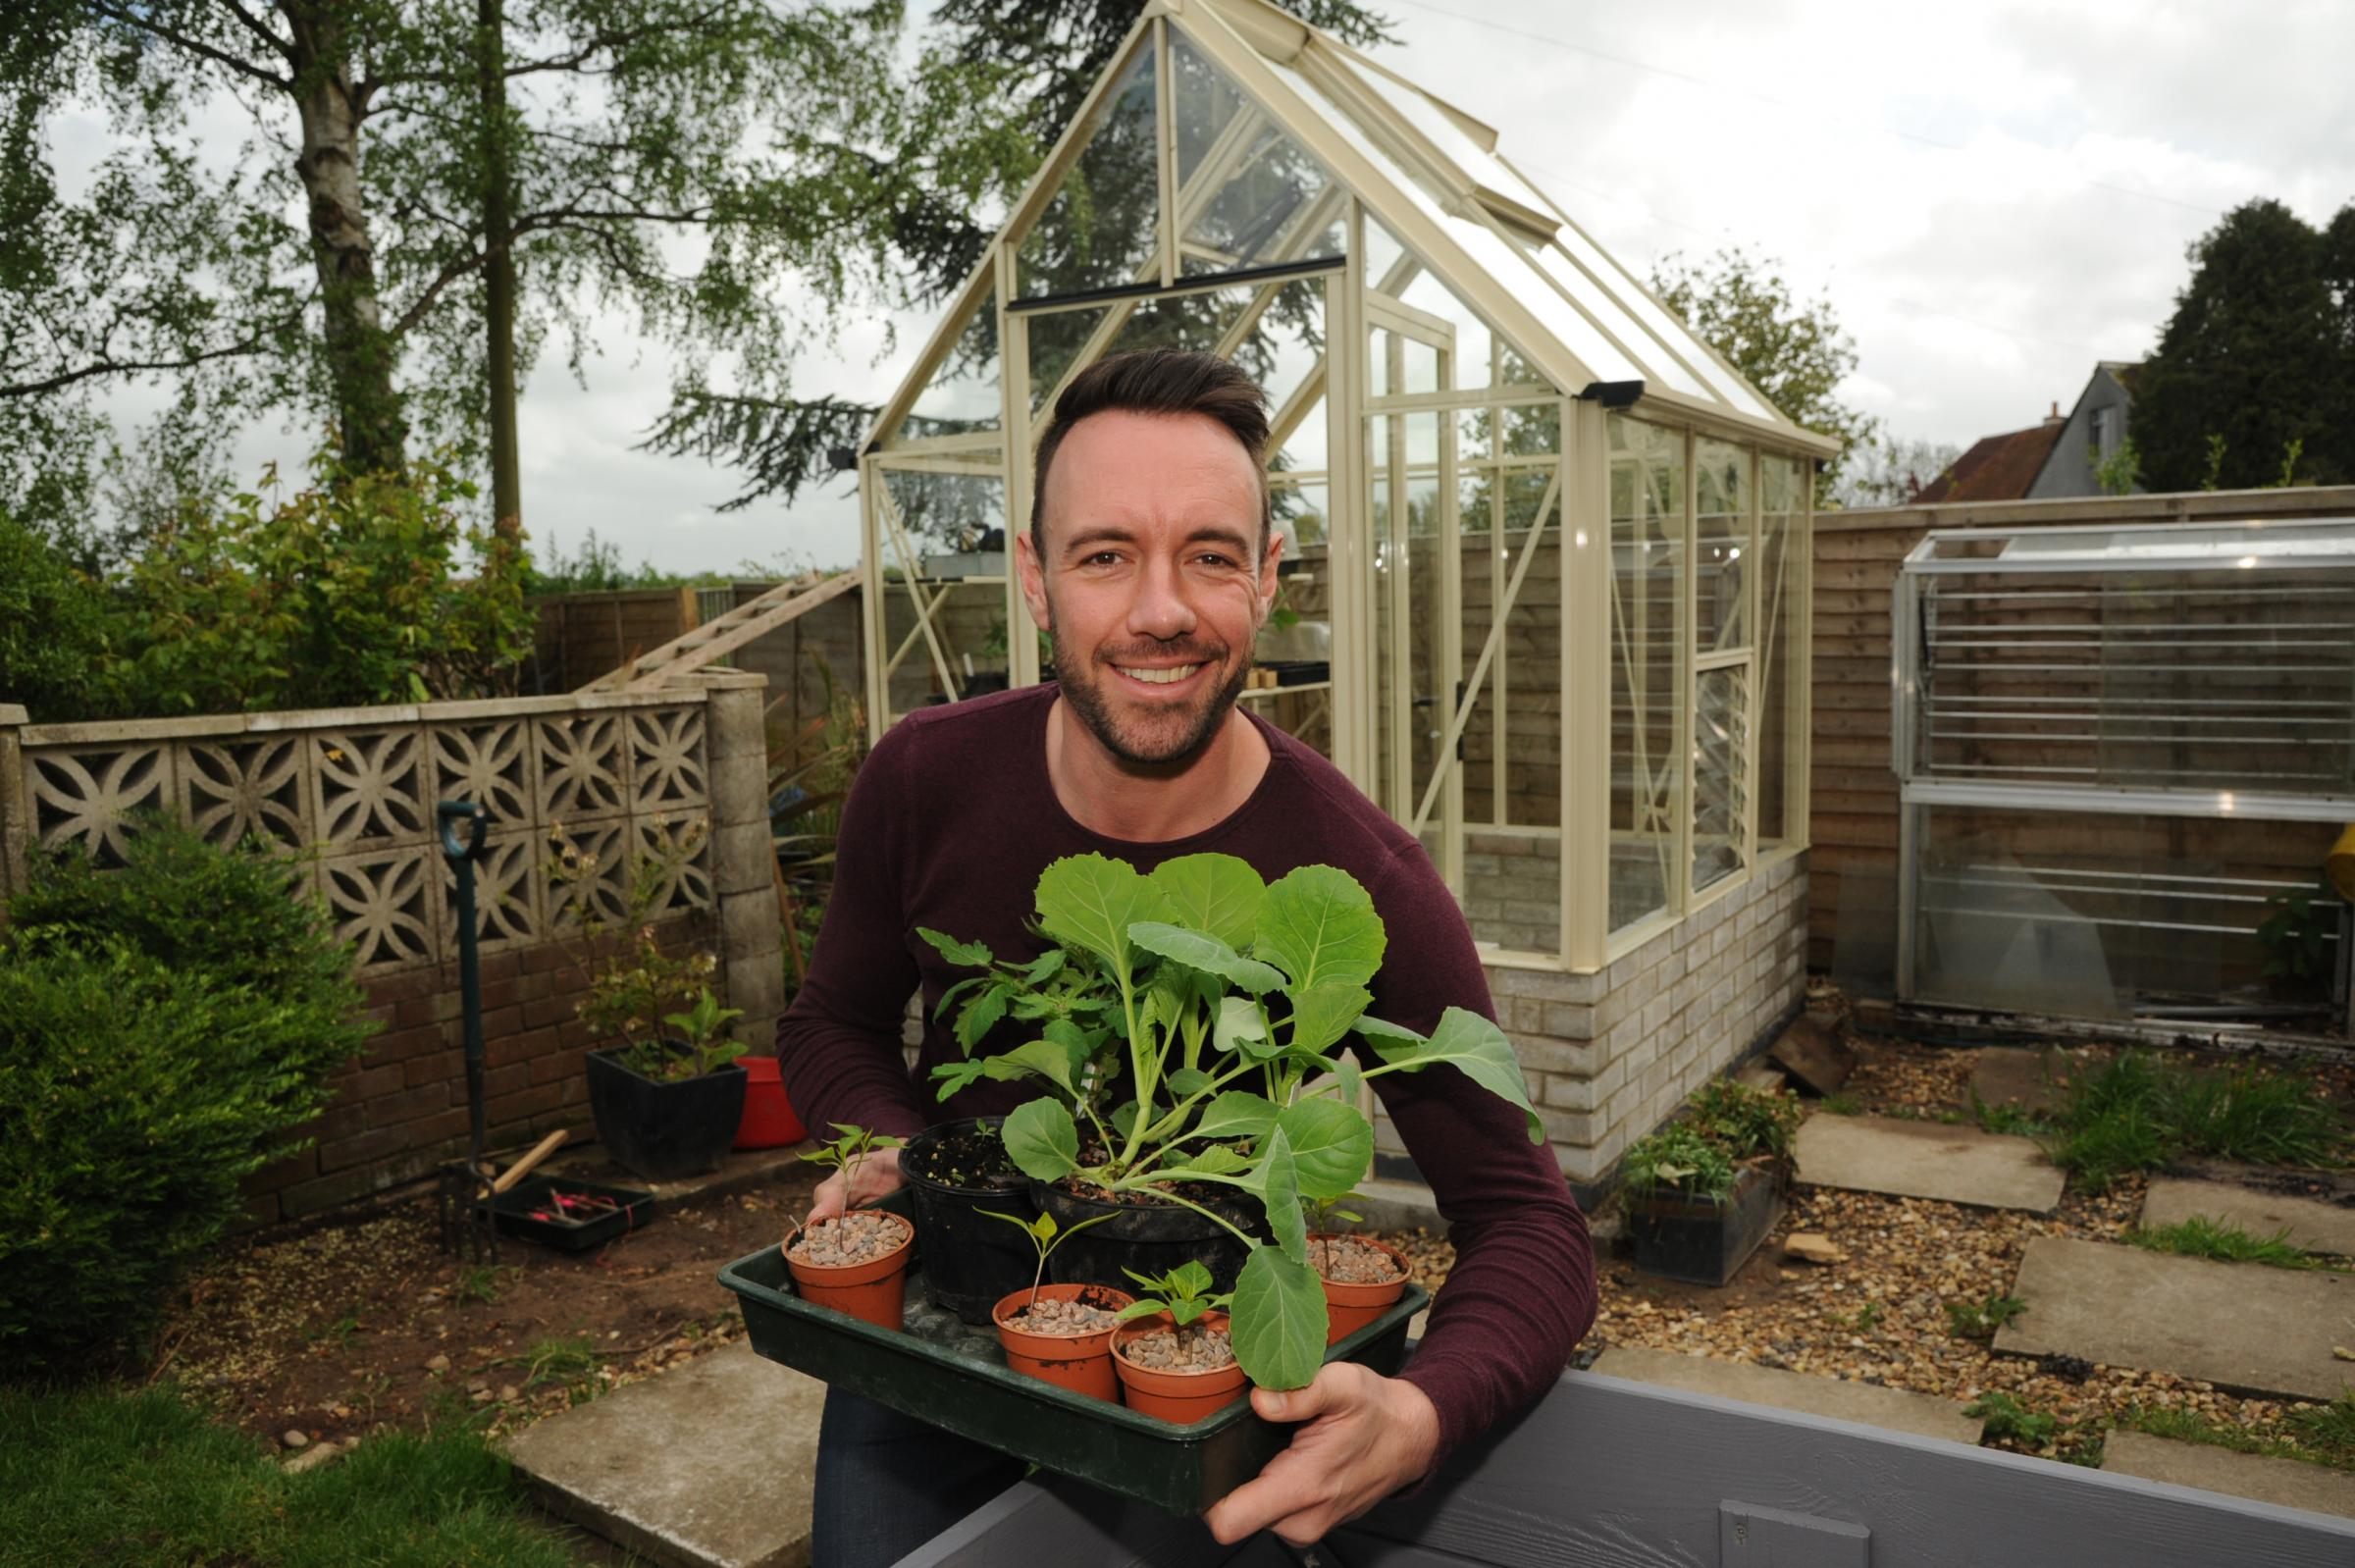 Southwick Gardener To Appear On New Bbc 2 Garden Design - garden design school devizes